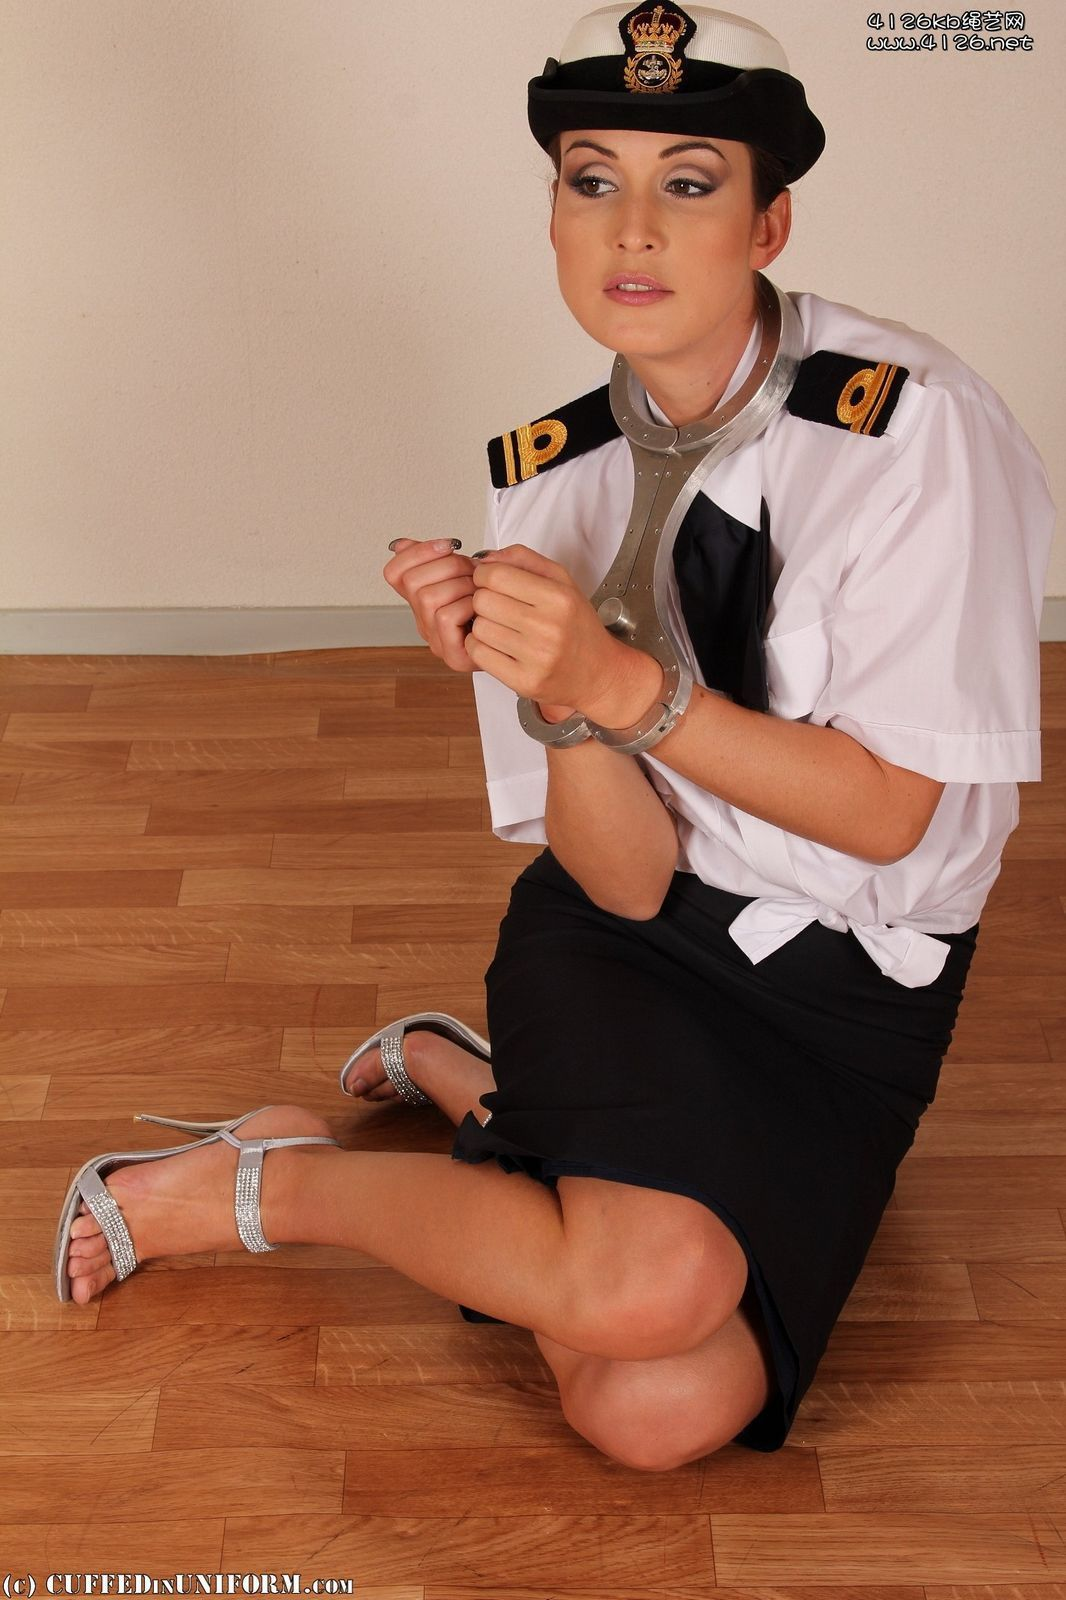 Watch Navy Girl porn videos for free, here on roeprocjfc.ga Discover the growing collection of high quality Most Relevant XXX movies and clips. No other sex tube is more popular and features more Navy Girl scenes than Pornhub! Browse through our impressive selection of .